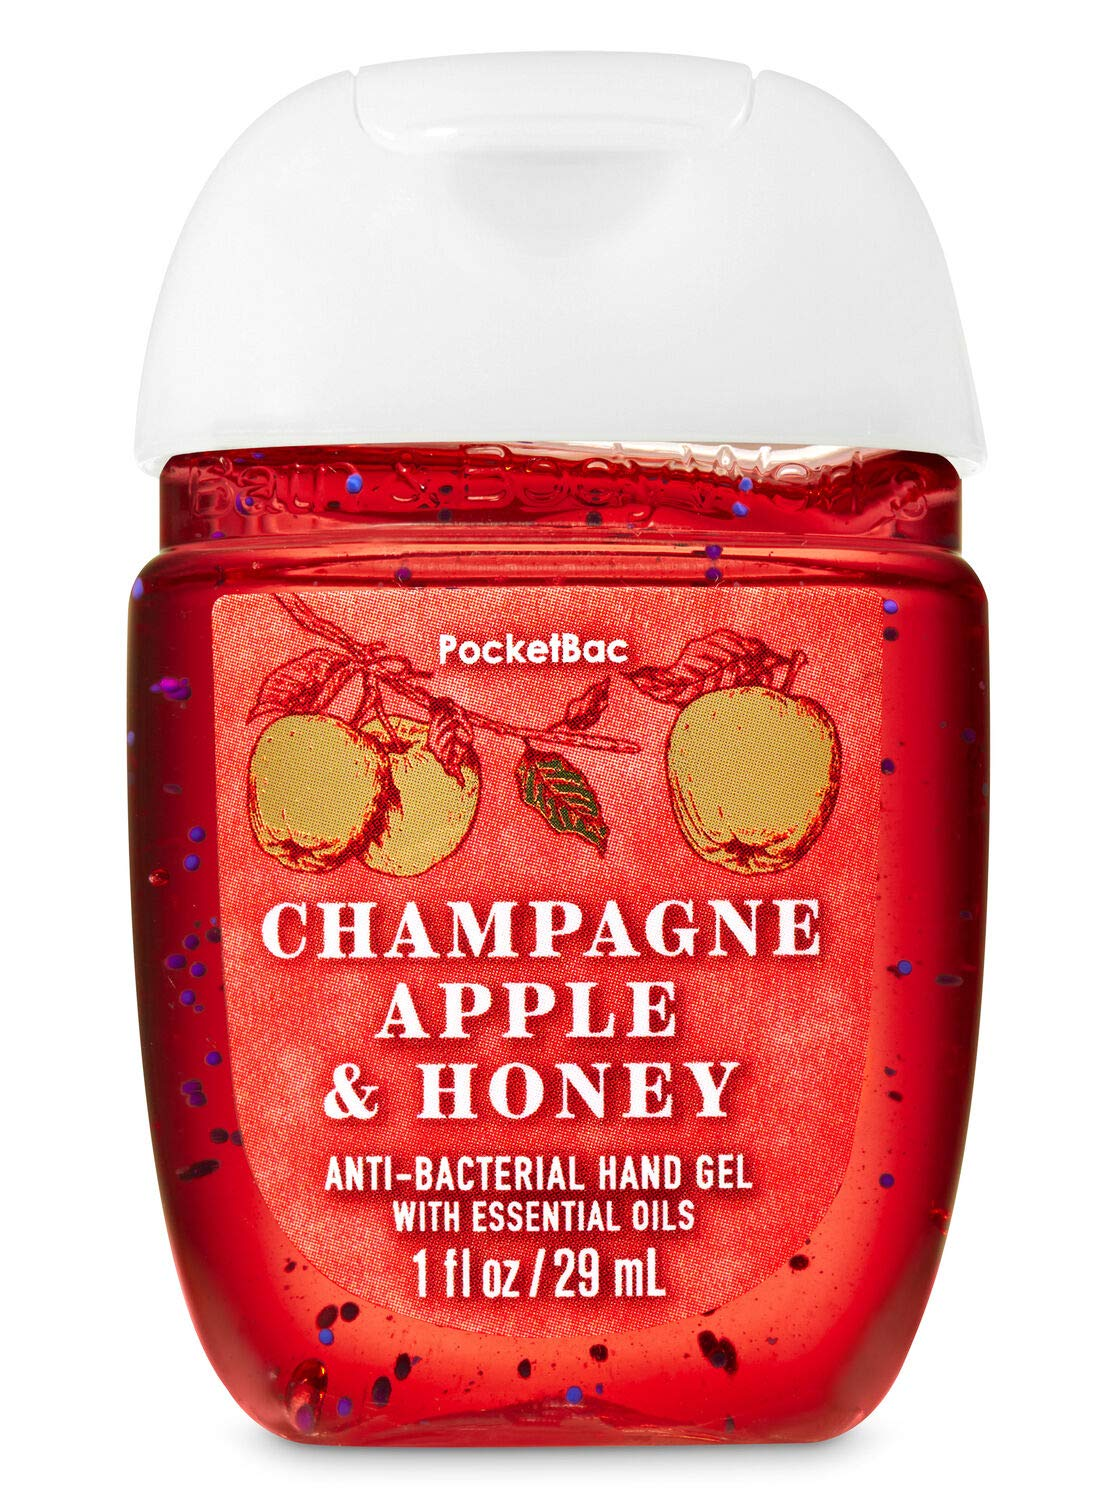 Hand Sanitizer 1 fl oz - Many Scents! (packaging may vary) (Champagne Apple & Honey)